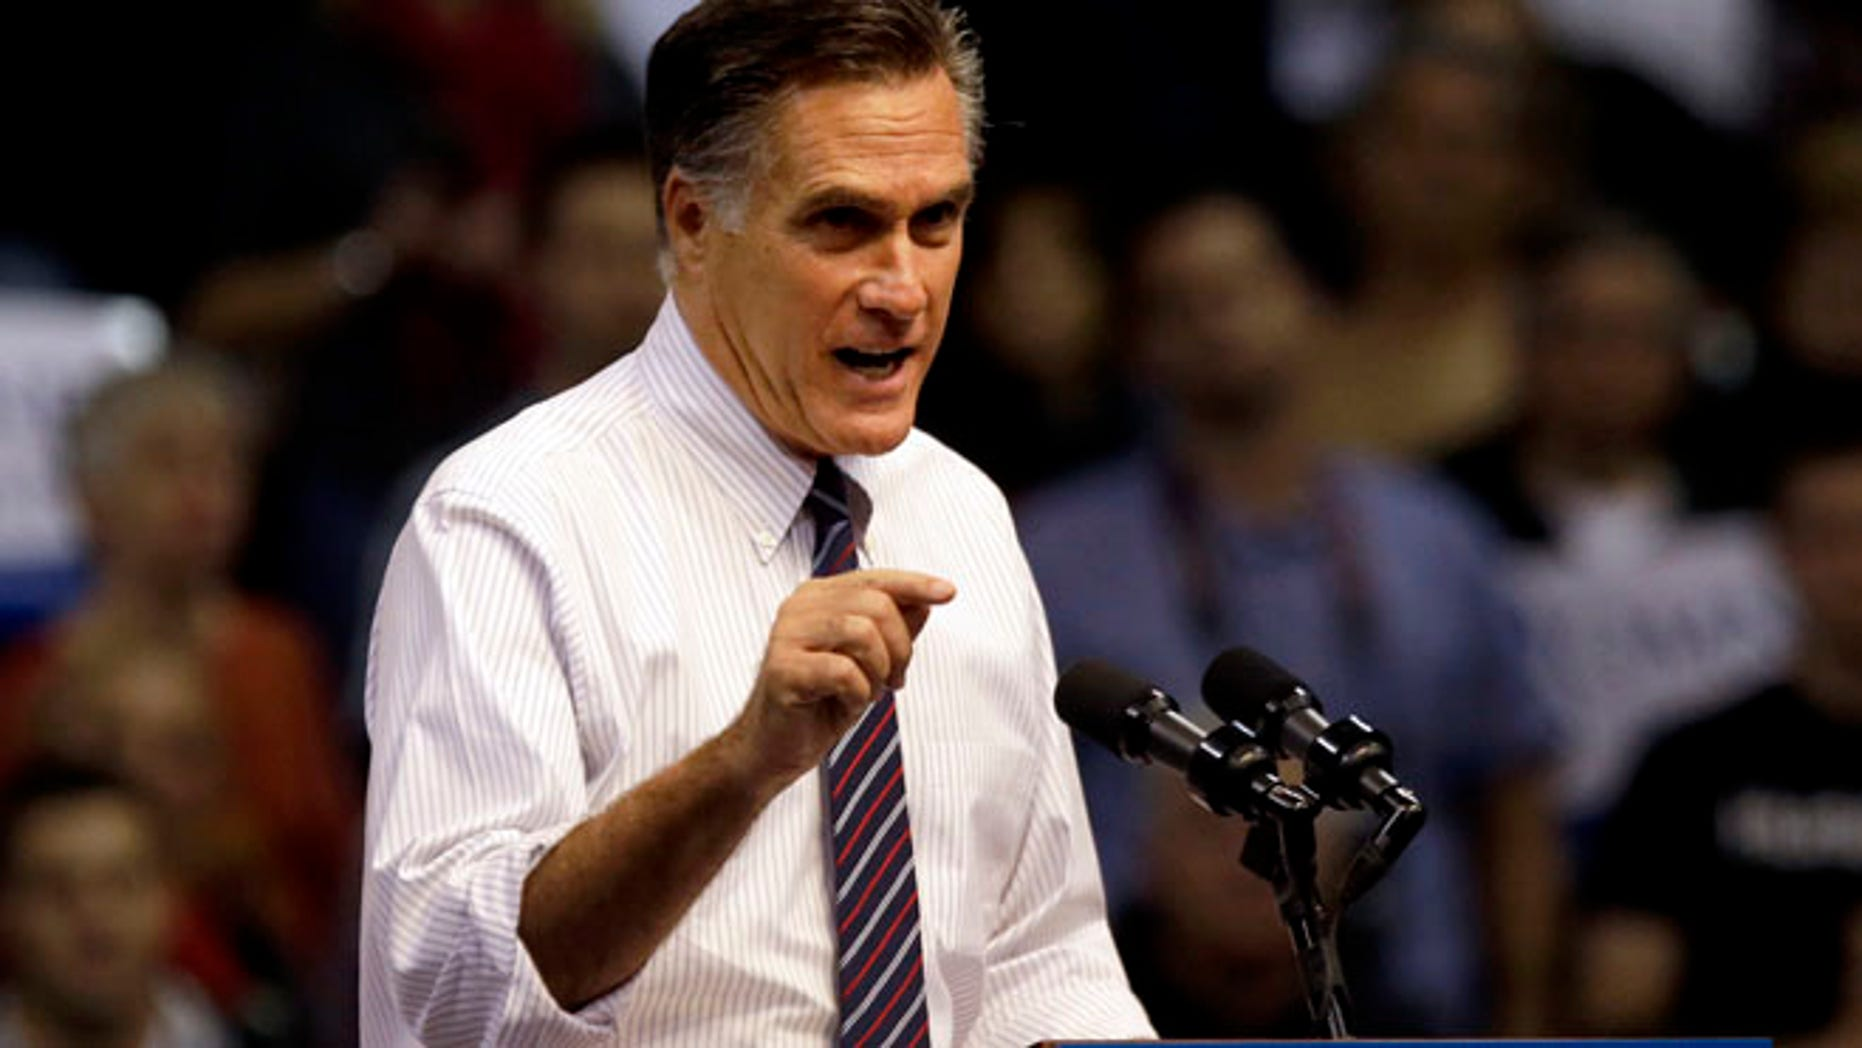 Nov. 5, 2012: Mitt Romney speaks at a campaign event at the Verizon Wireless Arena in Manchester, N.H.